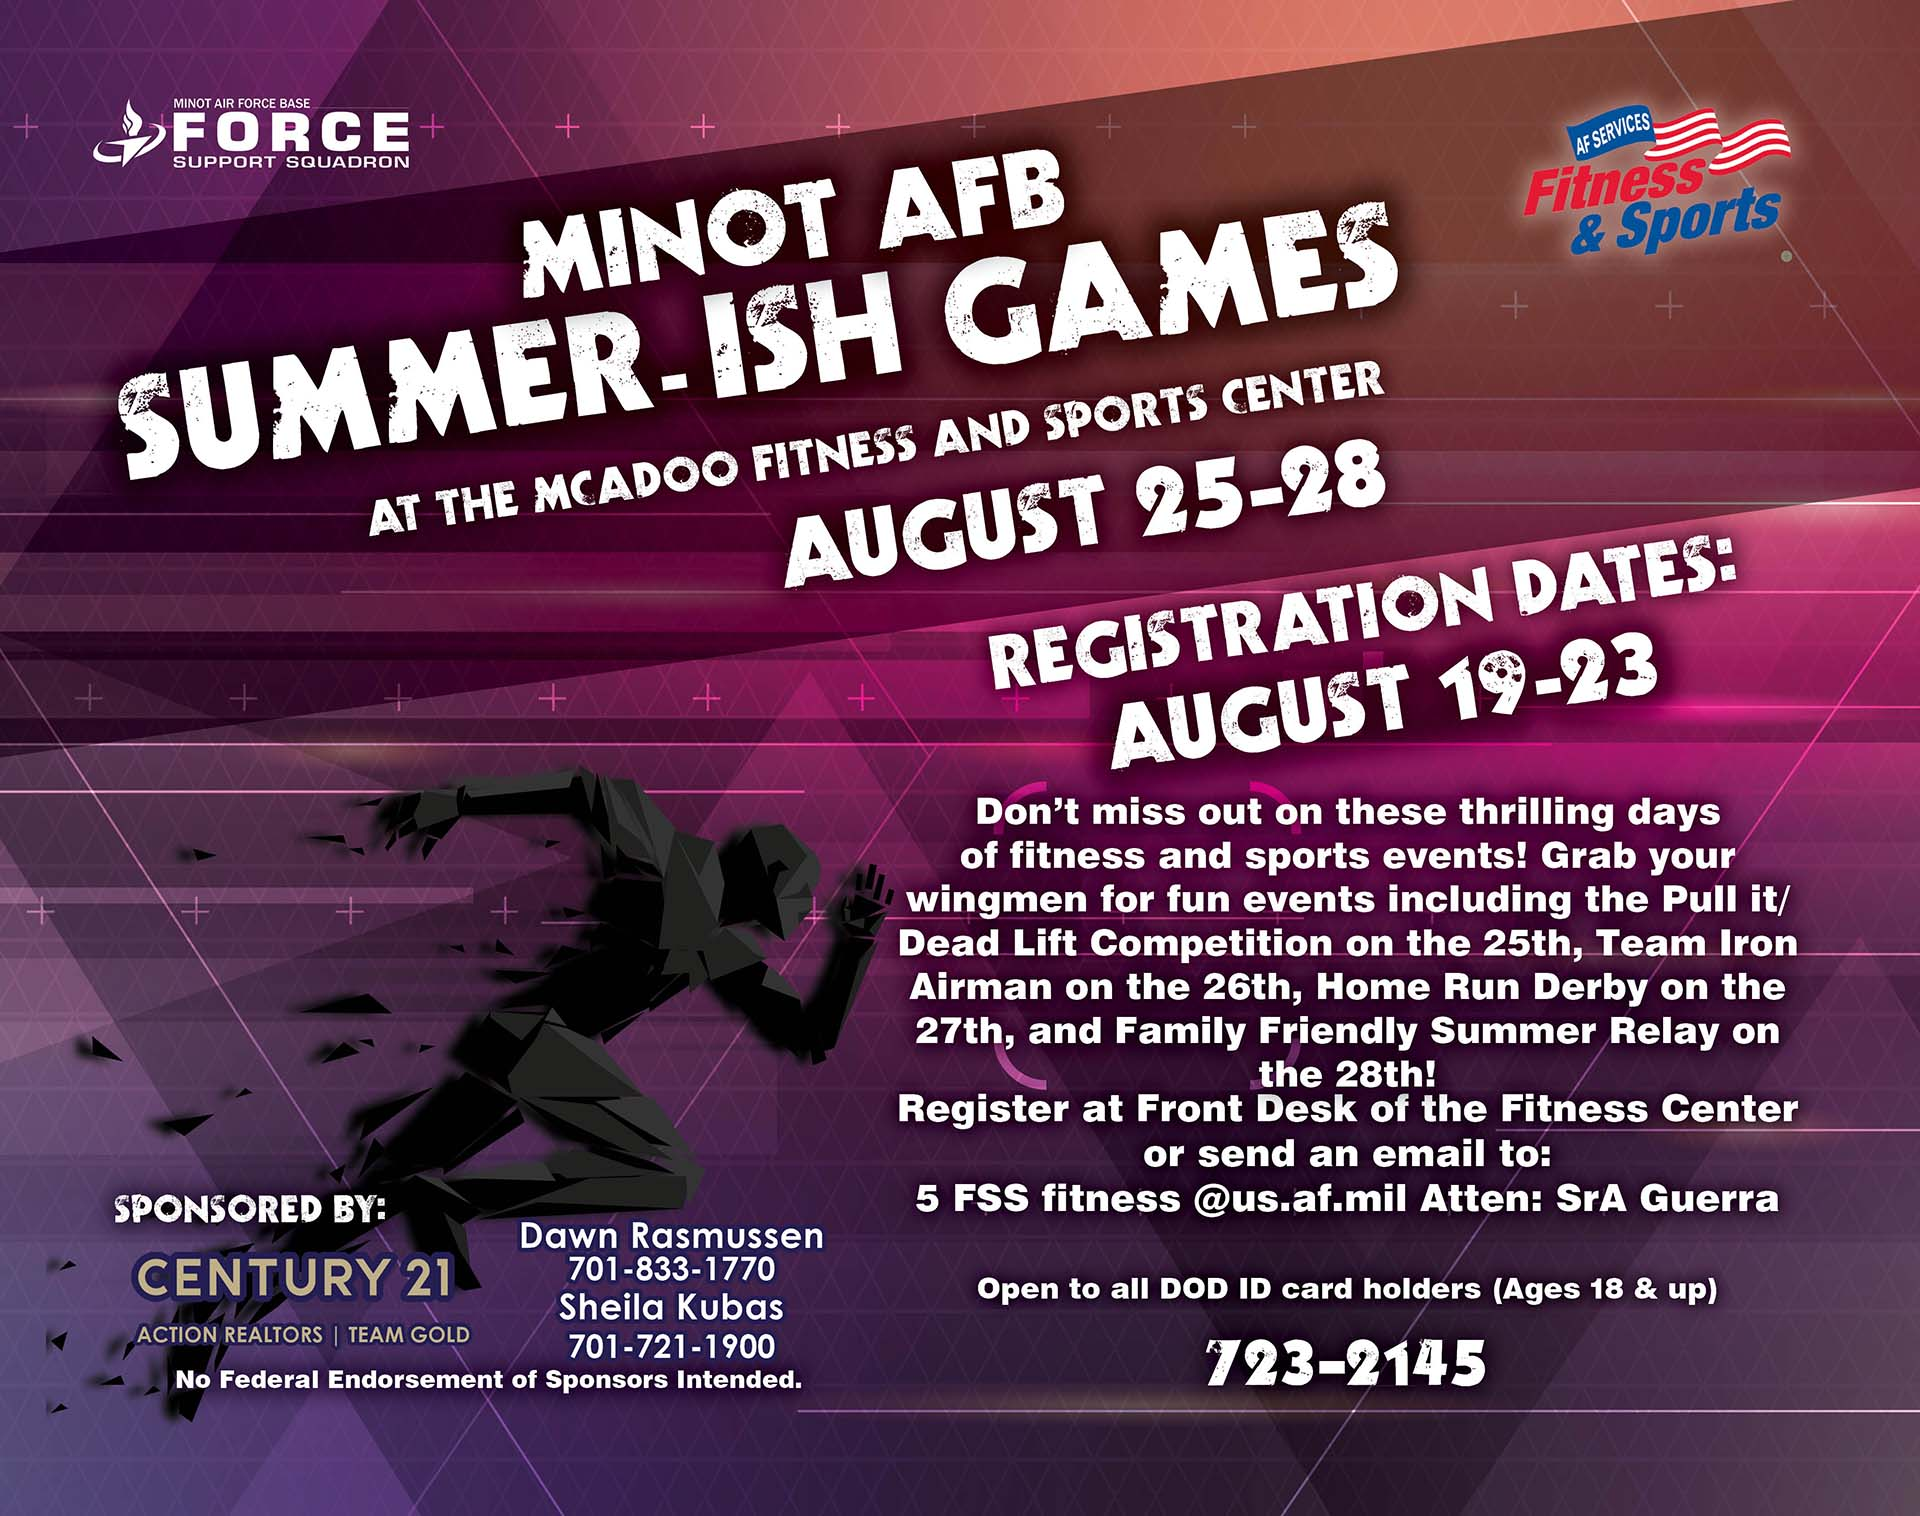 Registration Closes: Summer-ish Games